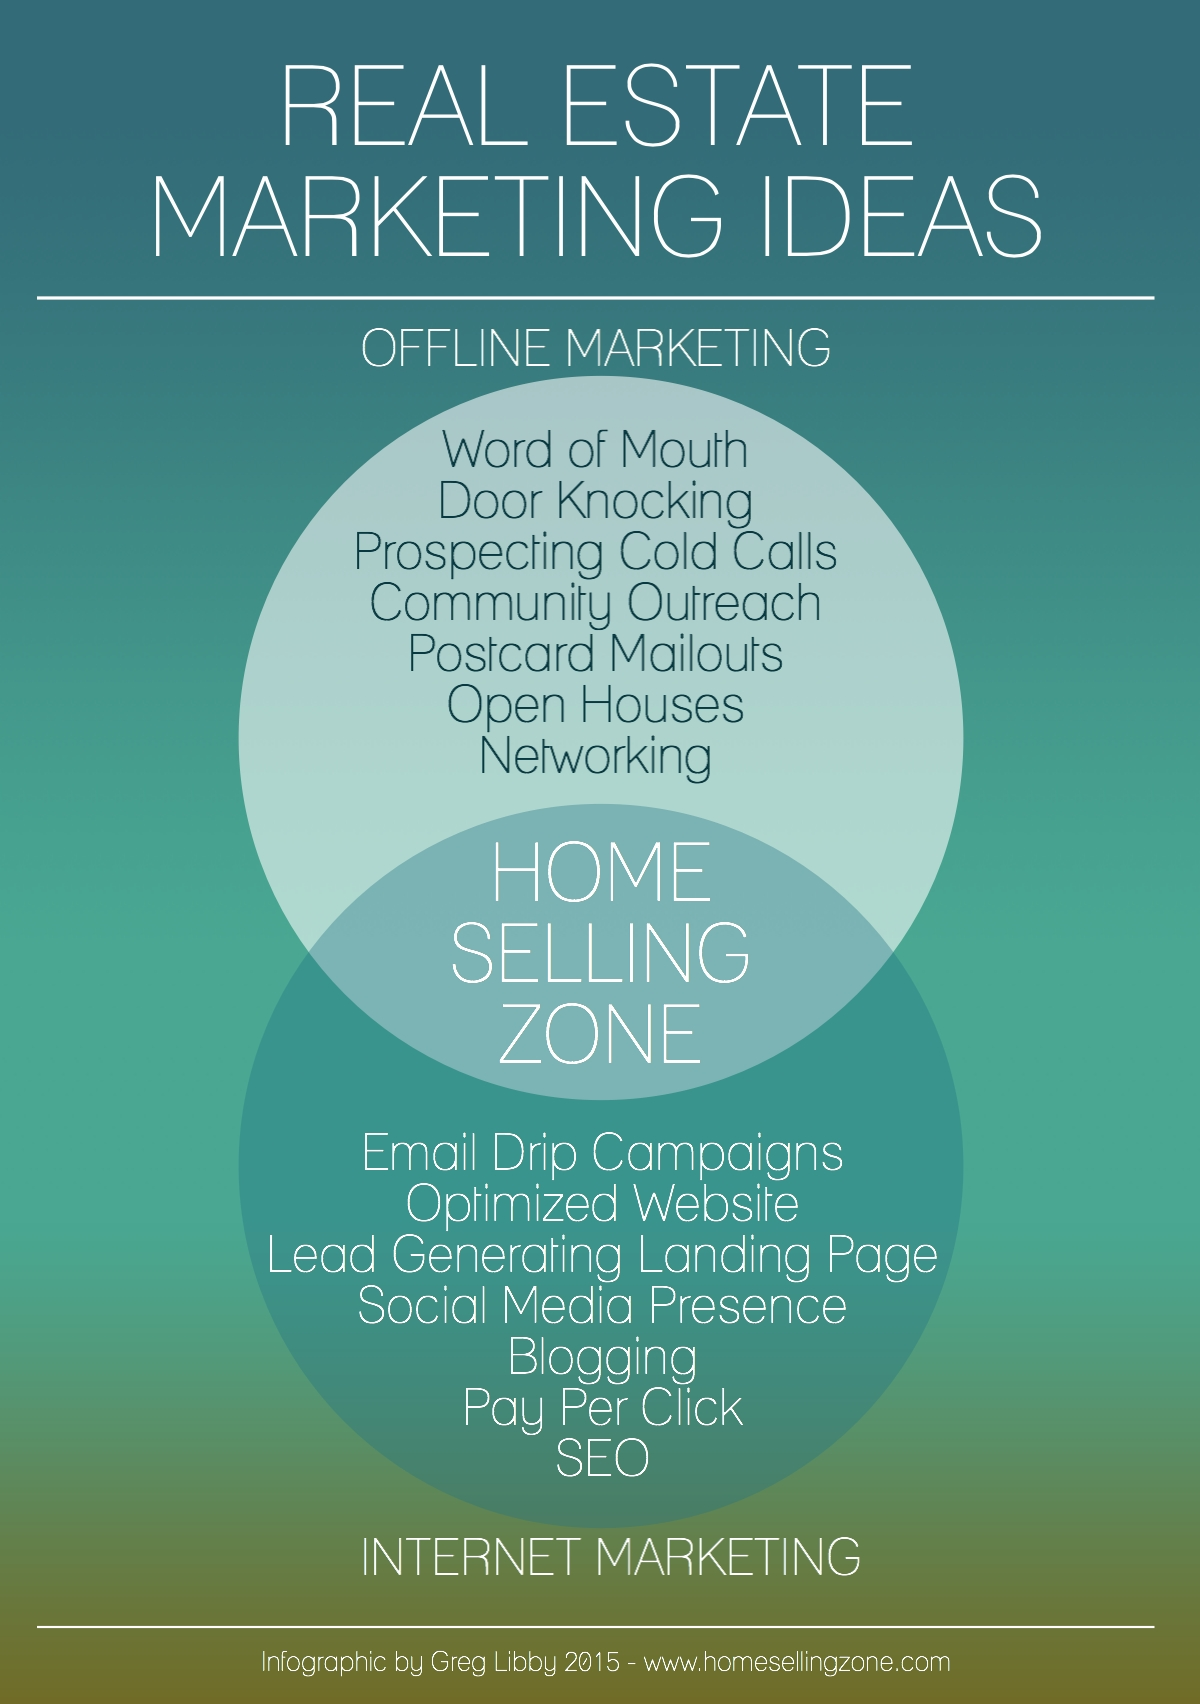 10 Gorgeous Marketing Ideas For Real Estate 14 real estate marketing ideas that work 2021